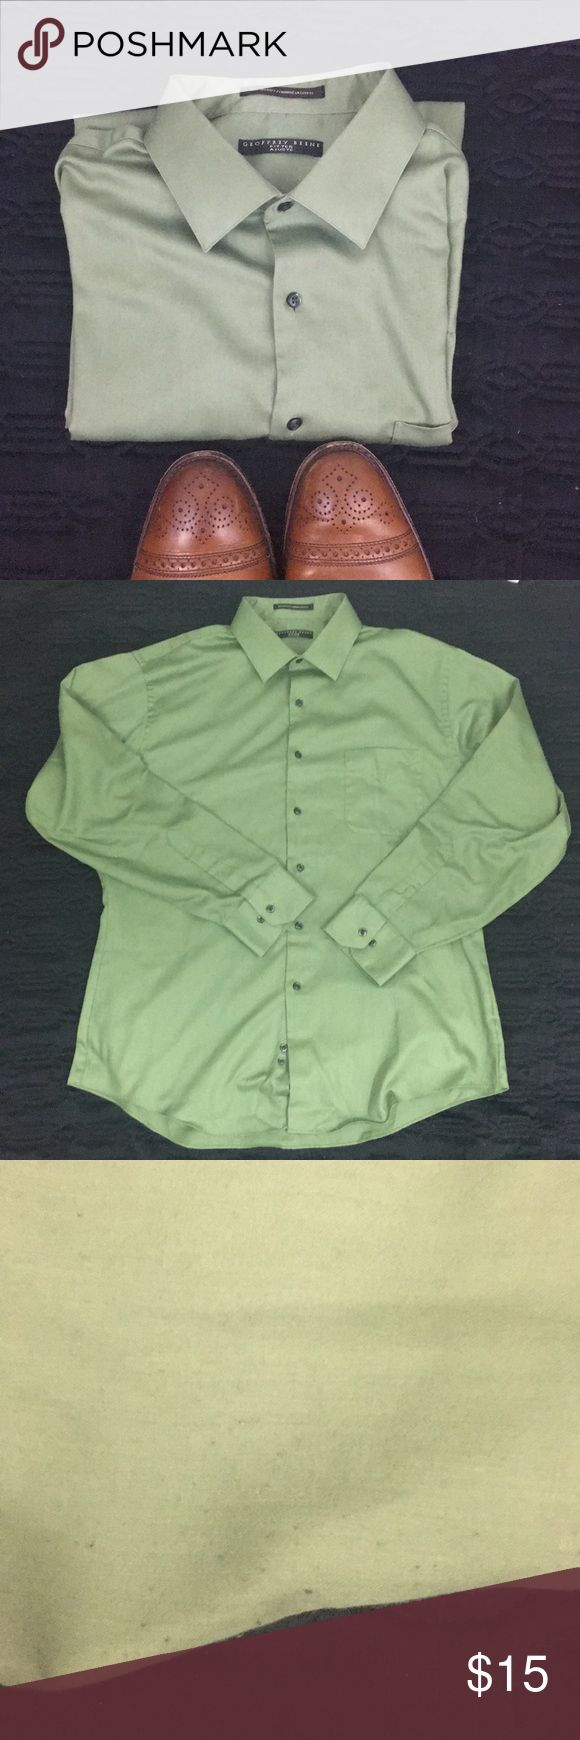 Geoffrey Beene Long Sleeve green shirt Beautiful green long sleeve shirt featuring dark gray buttons. Shirt is 17.5 neck, 34/35. Perfect for work or play. Add your favorite slacks or jeans. Some minor piling at armpits. See pictures for details. Non smoker hypoallergenic dog friendly home. Geoffrey Beene Shirts Dress Shirts